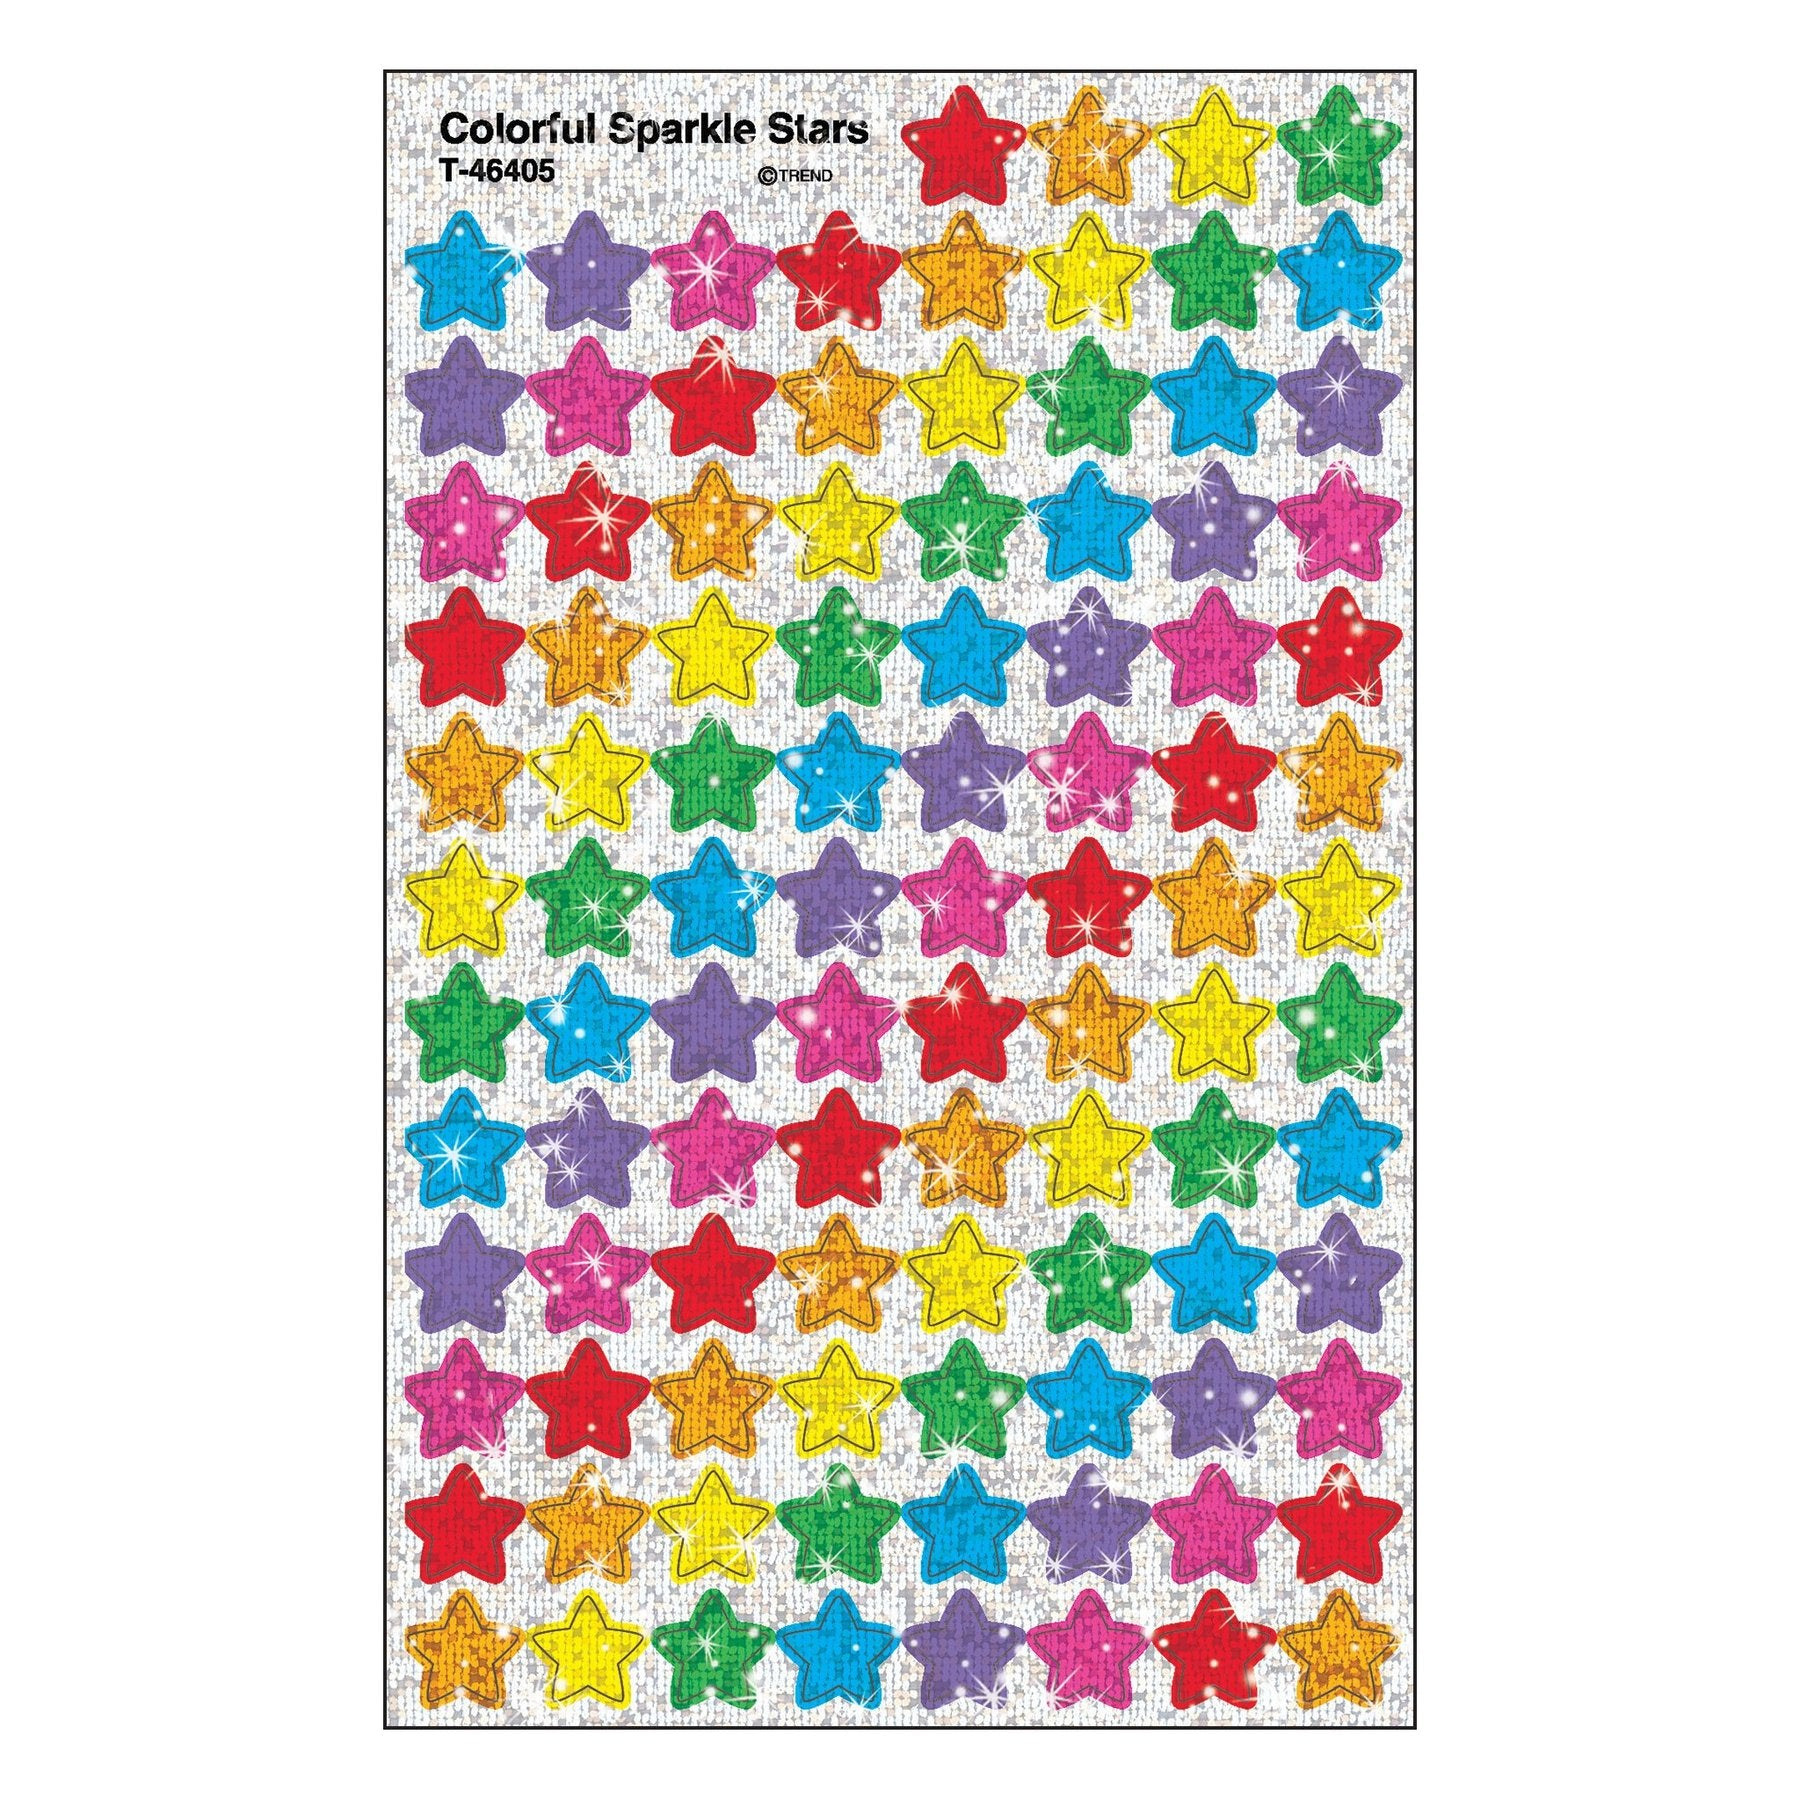 Colorful Stars superShapes Stickers – Sparkle